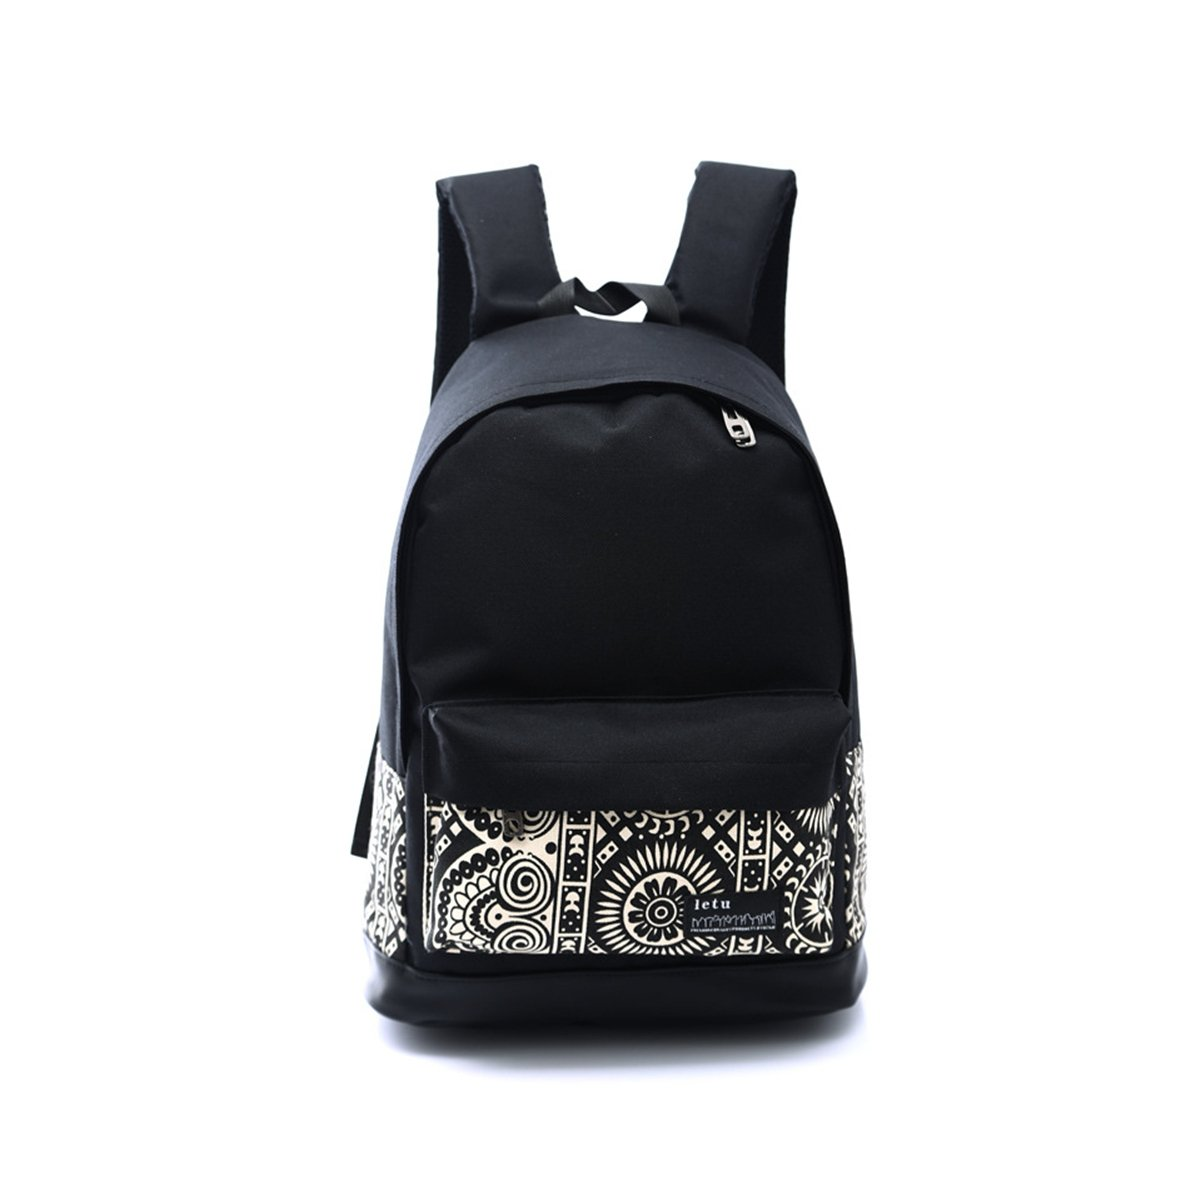 ThinkMax Children Fashion Casual Lightweight Canvas School Backpack Rucksack Travel Bags Black UK-I13822-LOVE